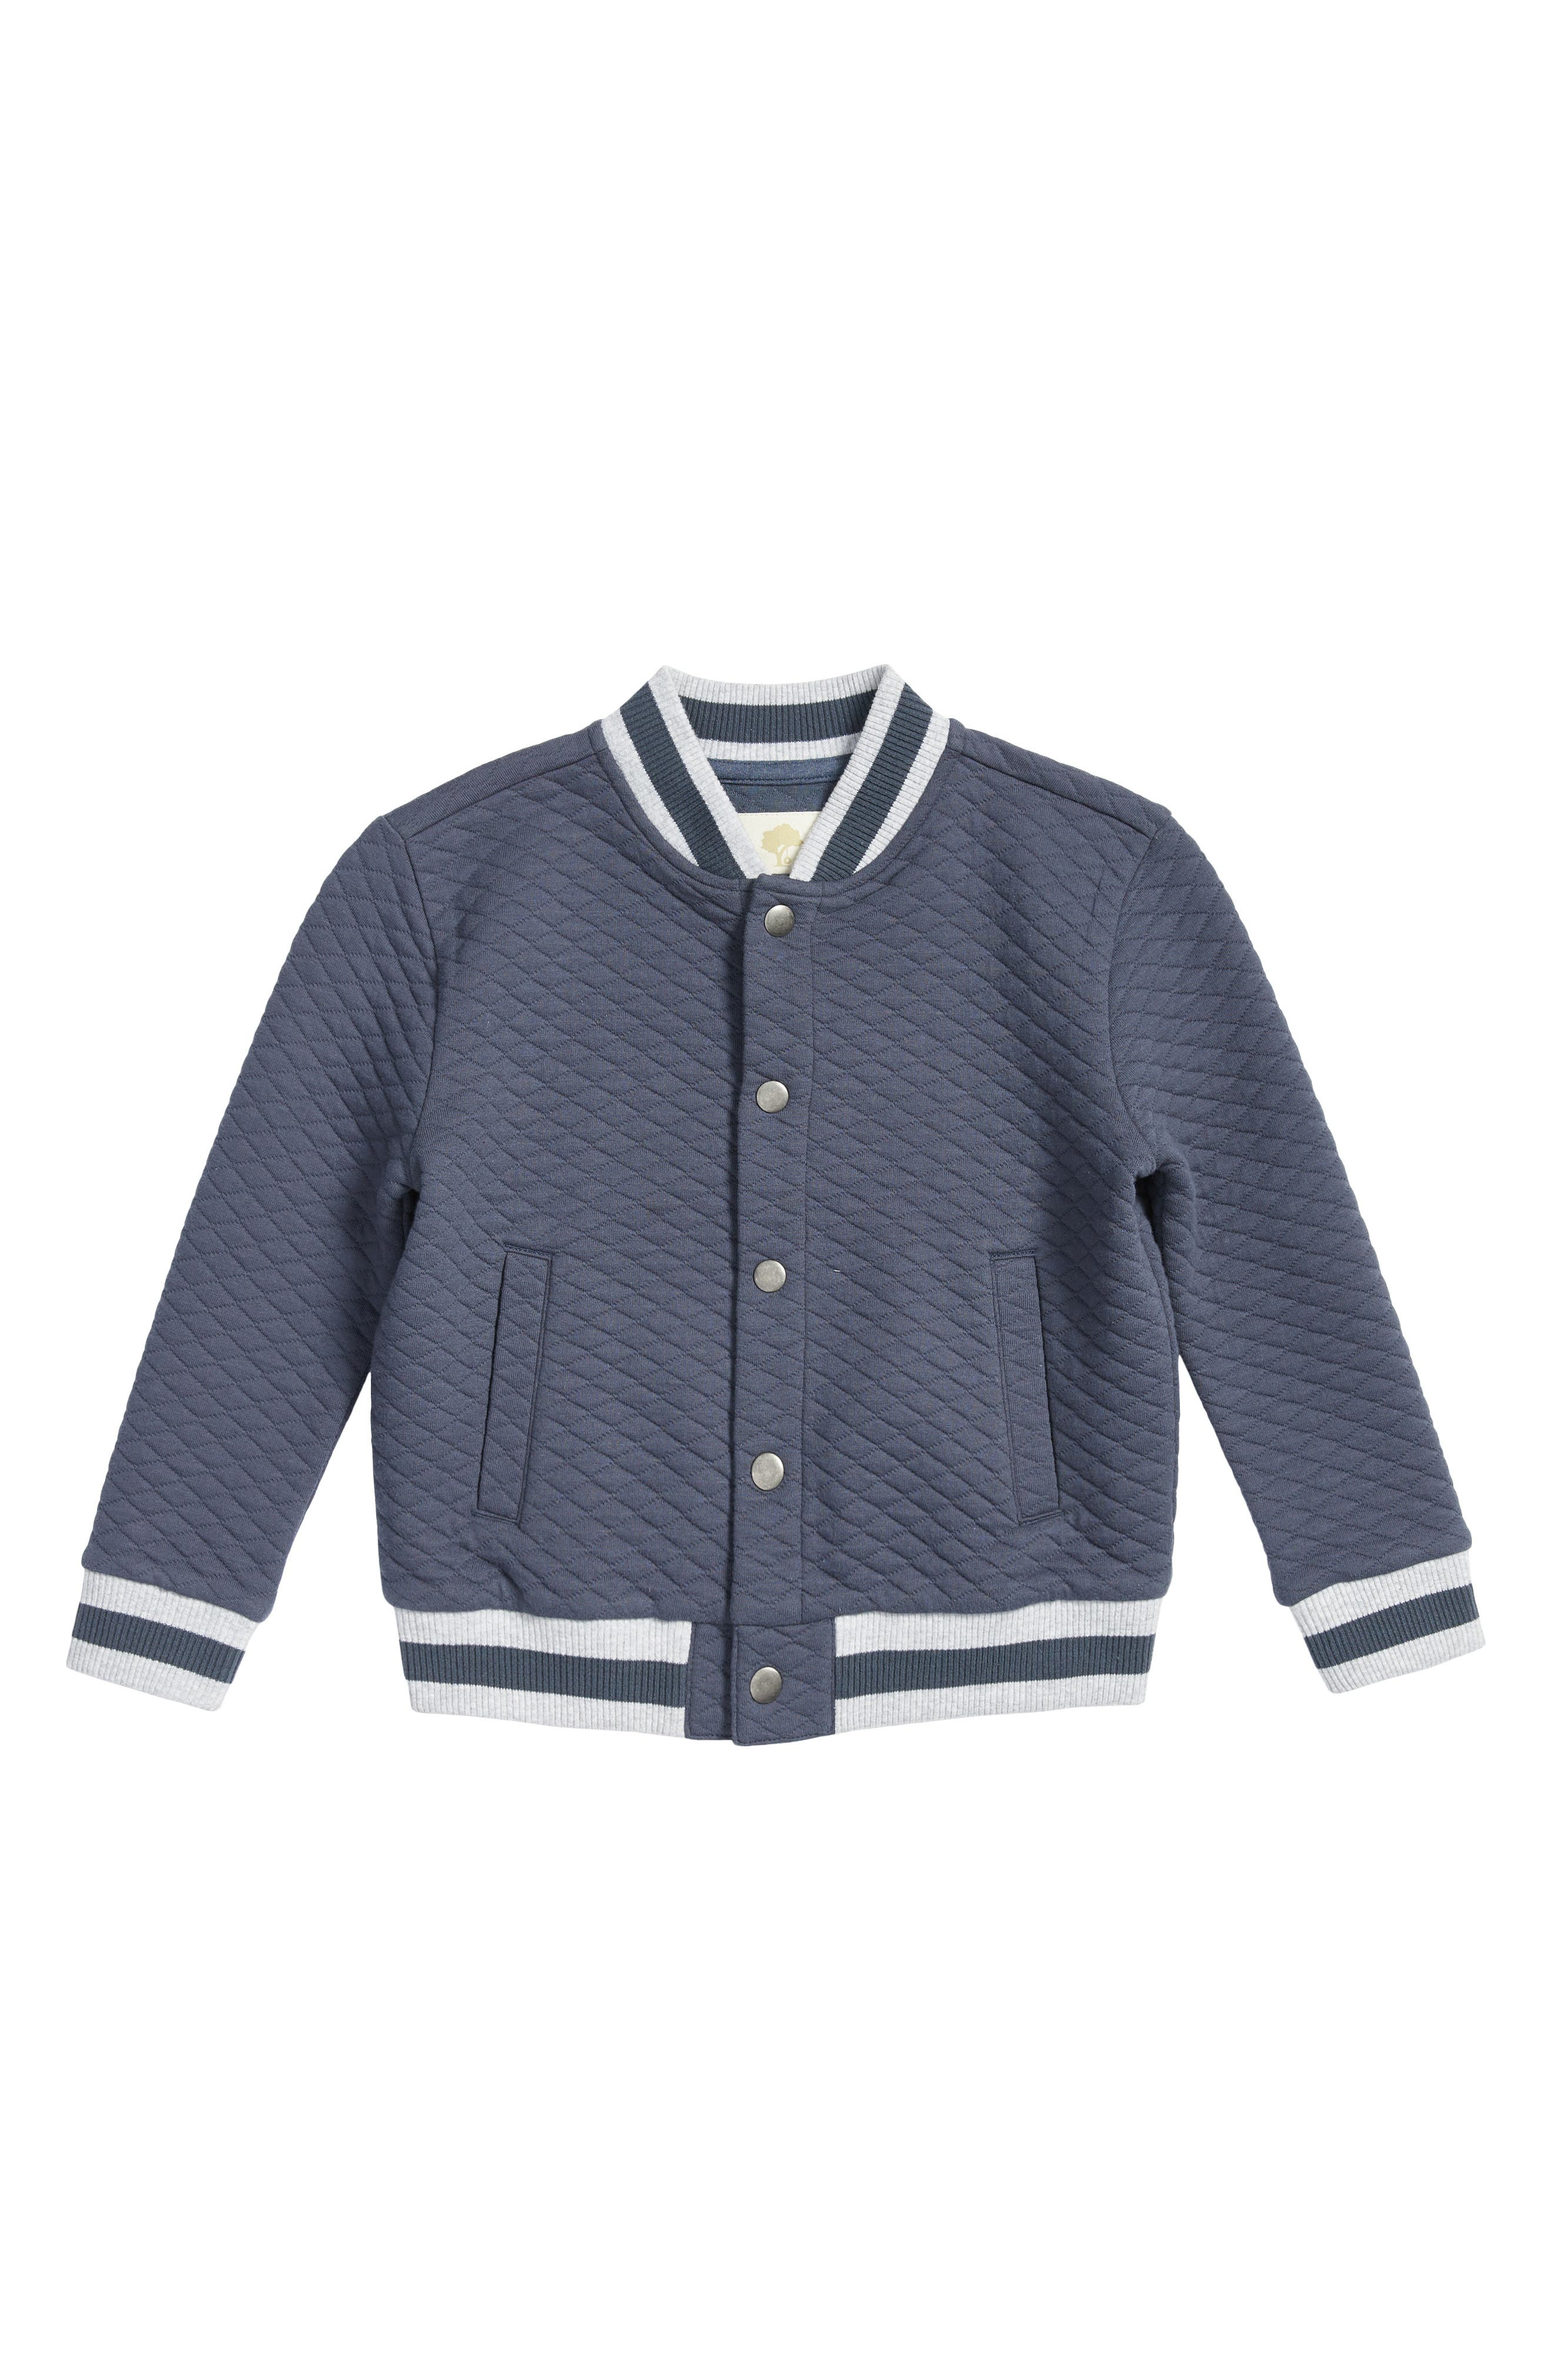 Main Image - Tucker + Tate Quilted Baseball Jacket (Toddler Boys & Little Boys)